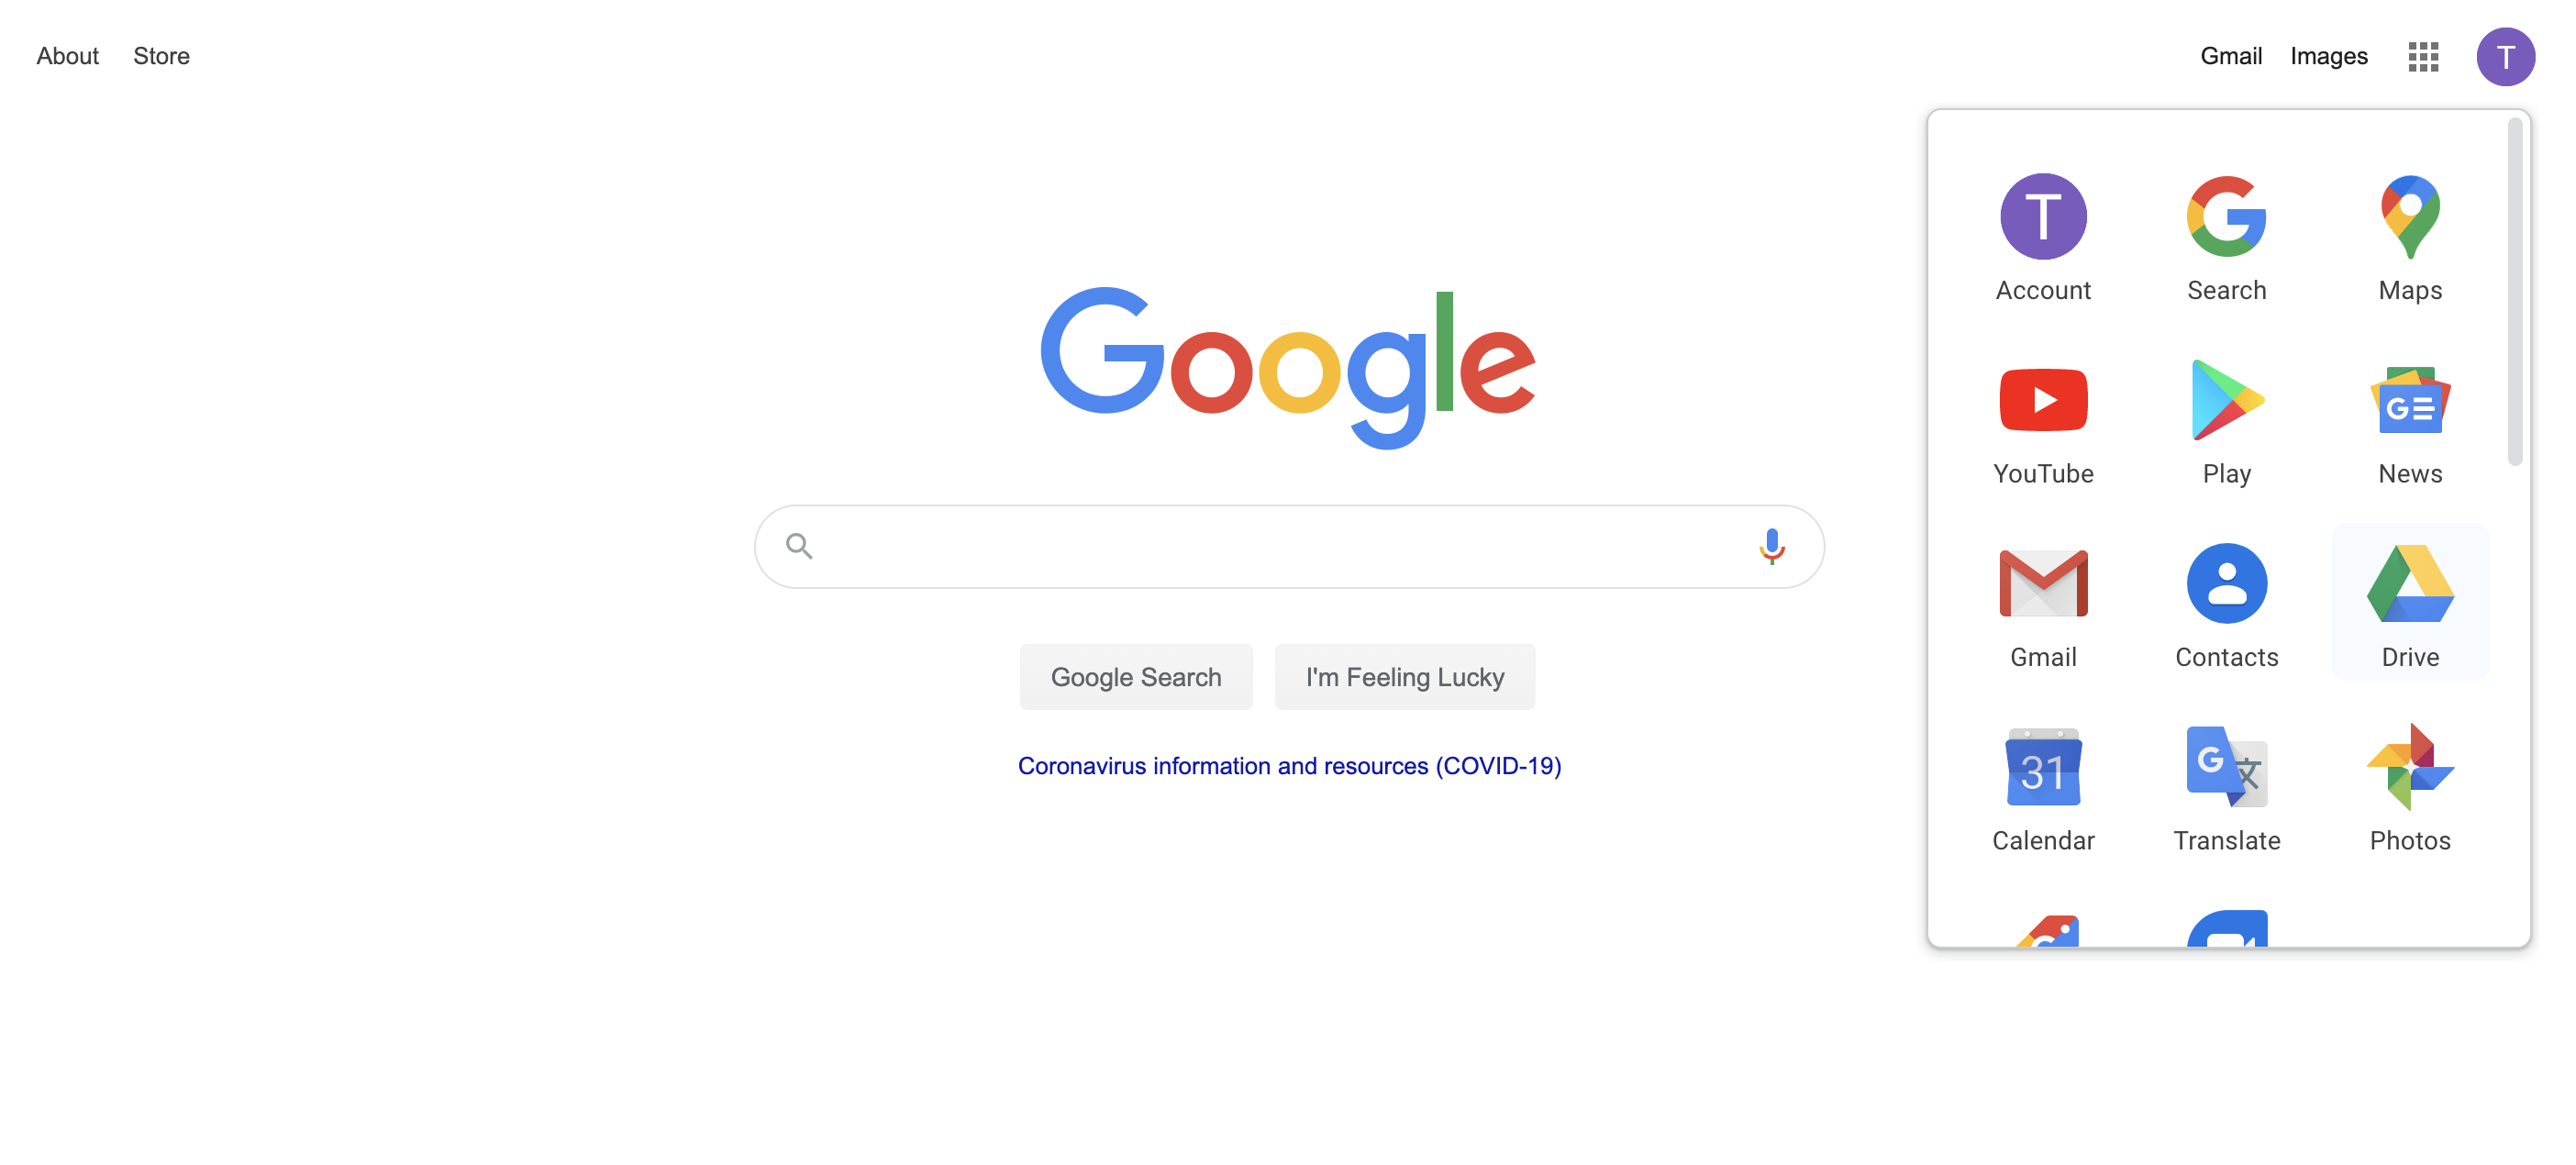 Accessing Google Drive from Google.com